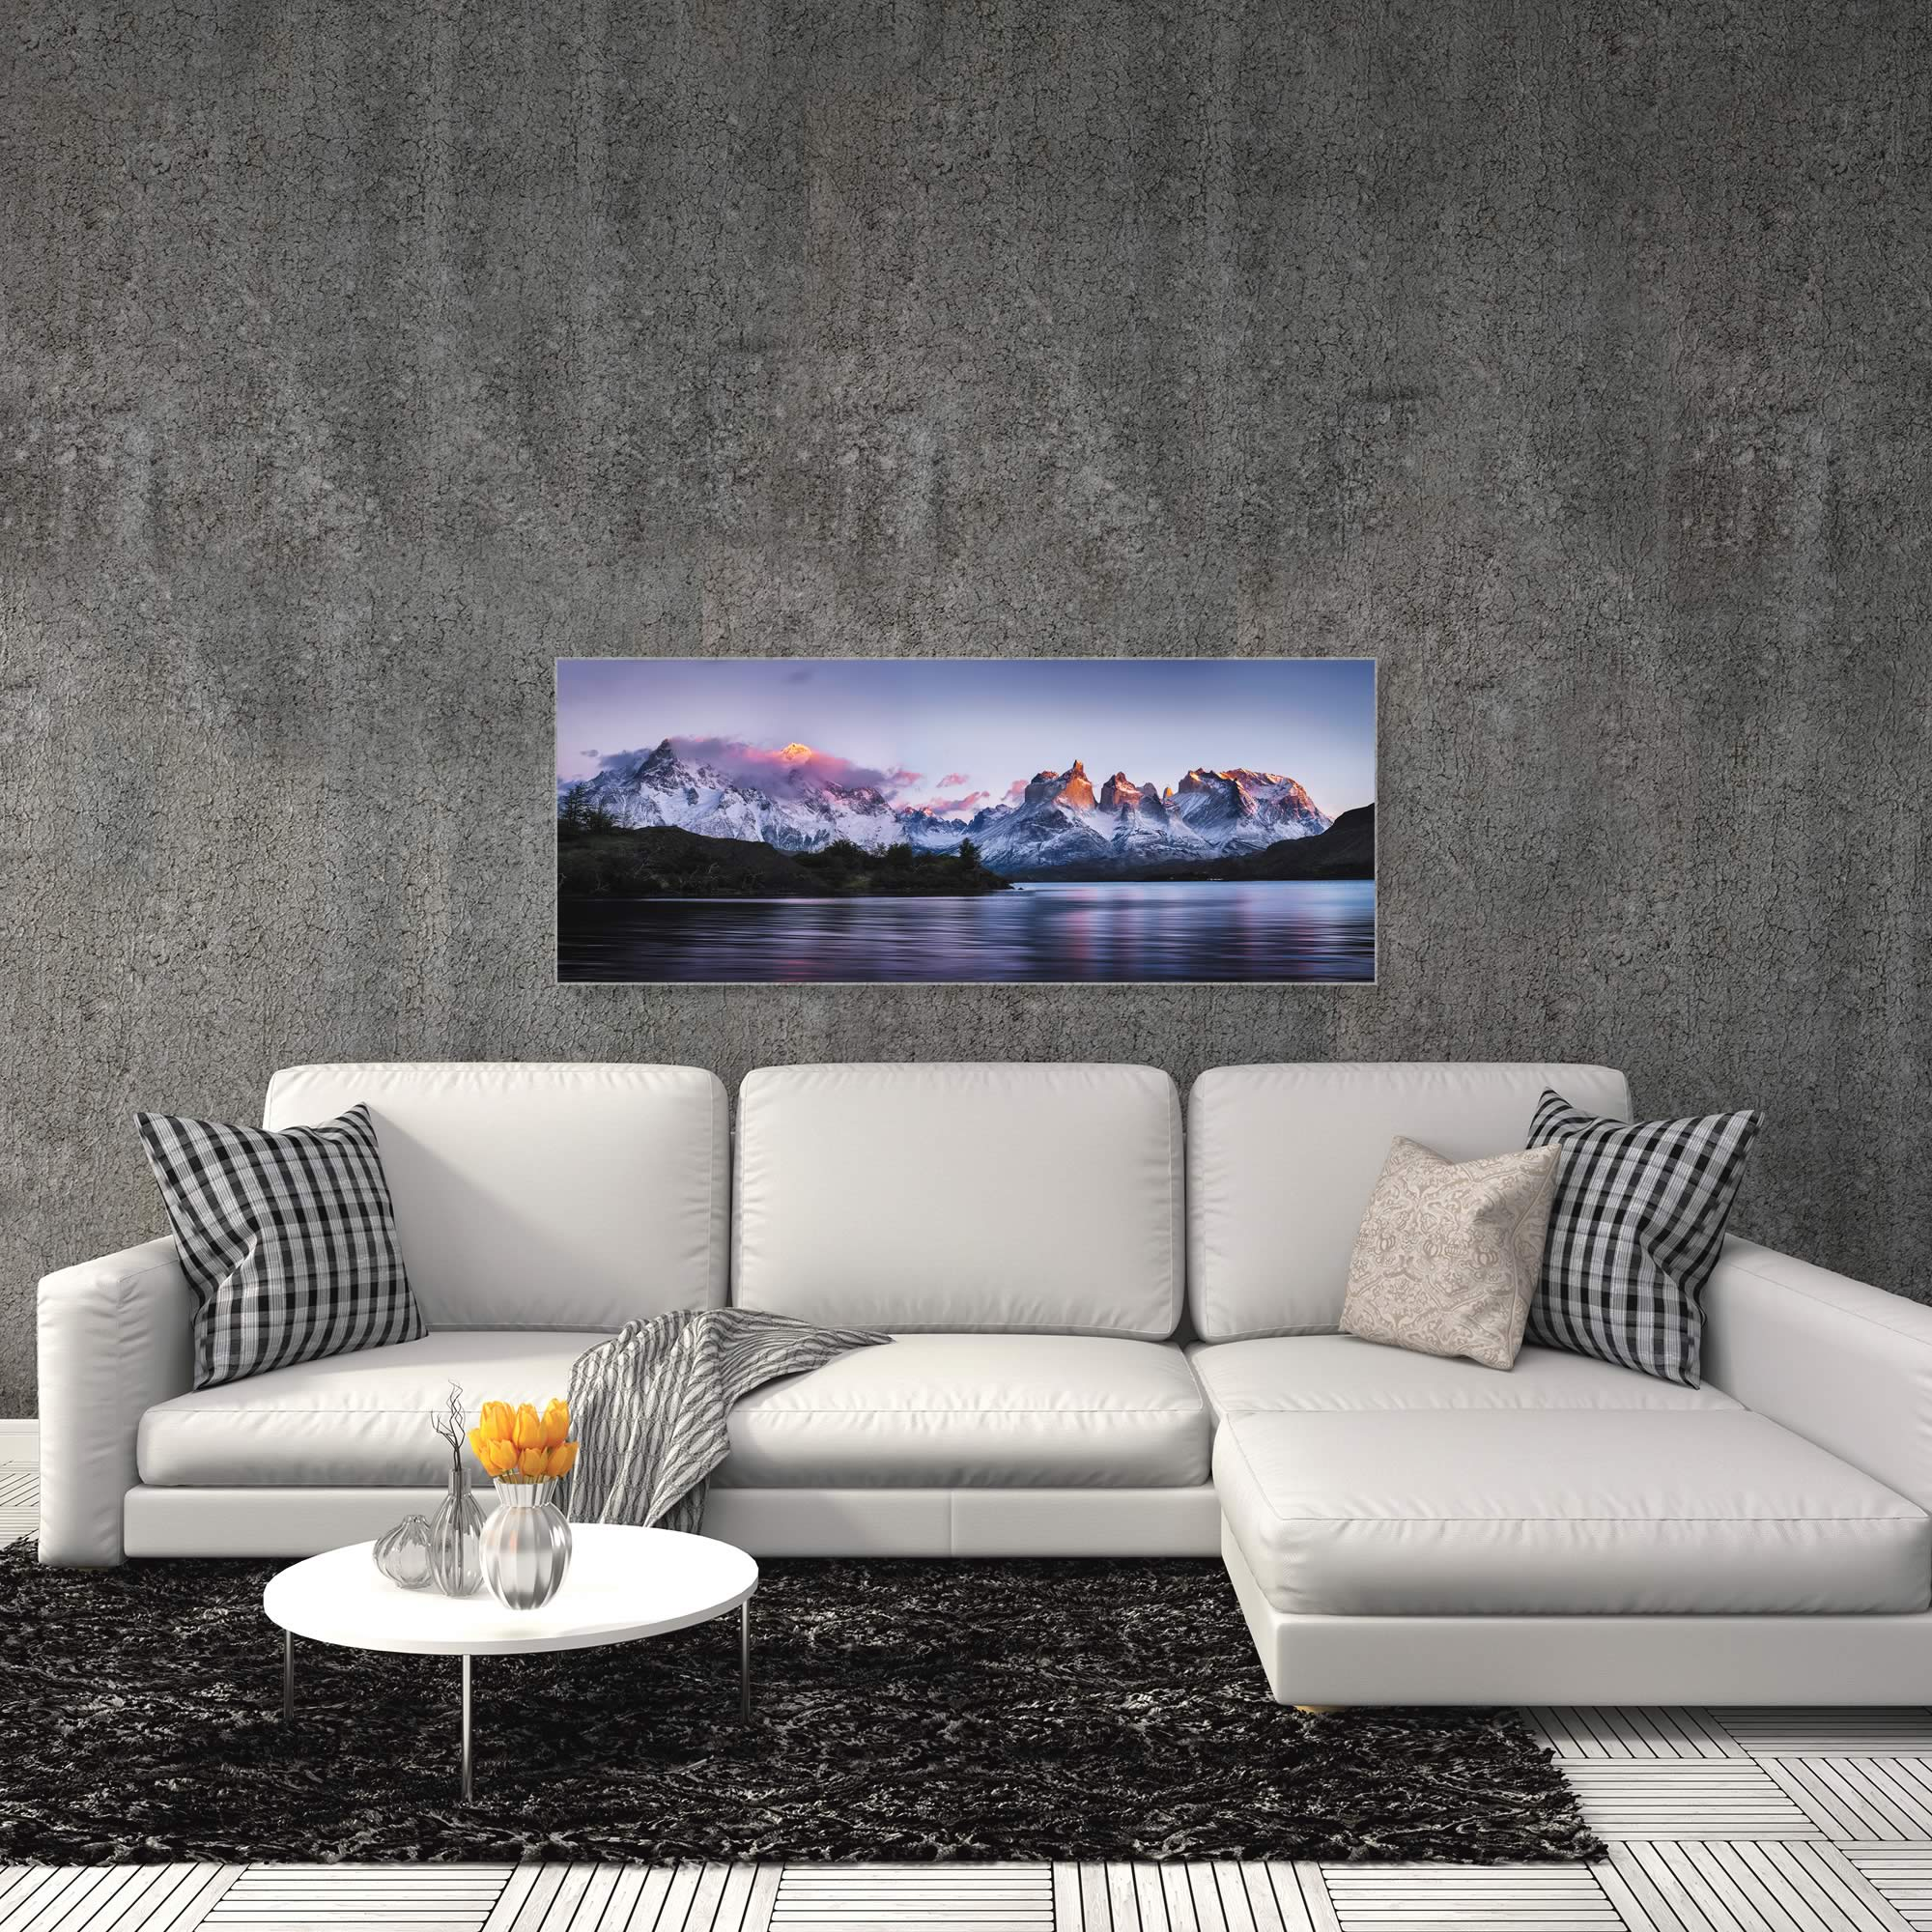 Torres del Paine by Ignacio Palacios - Landscape Art on Metal or Acrylic - Alternate View 3